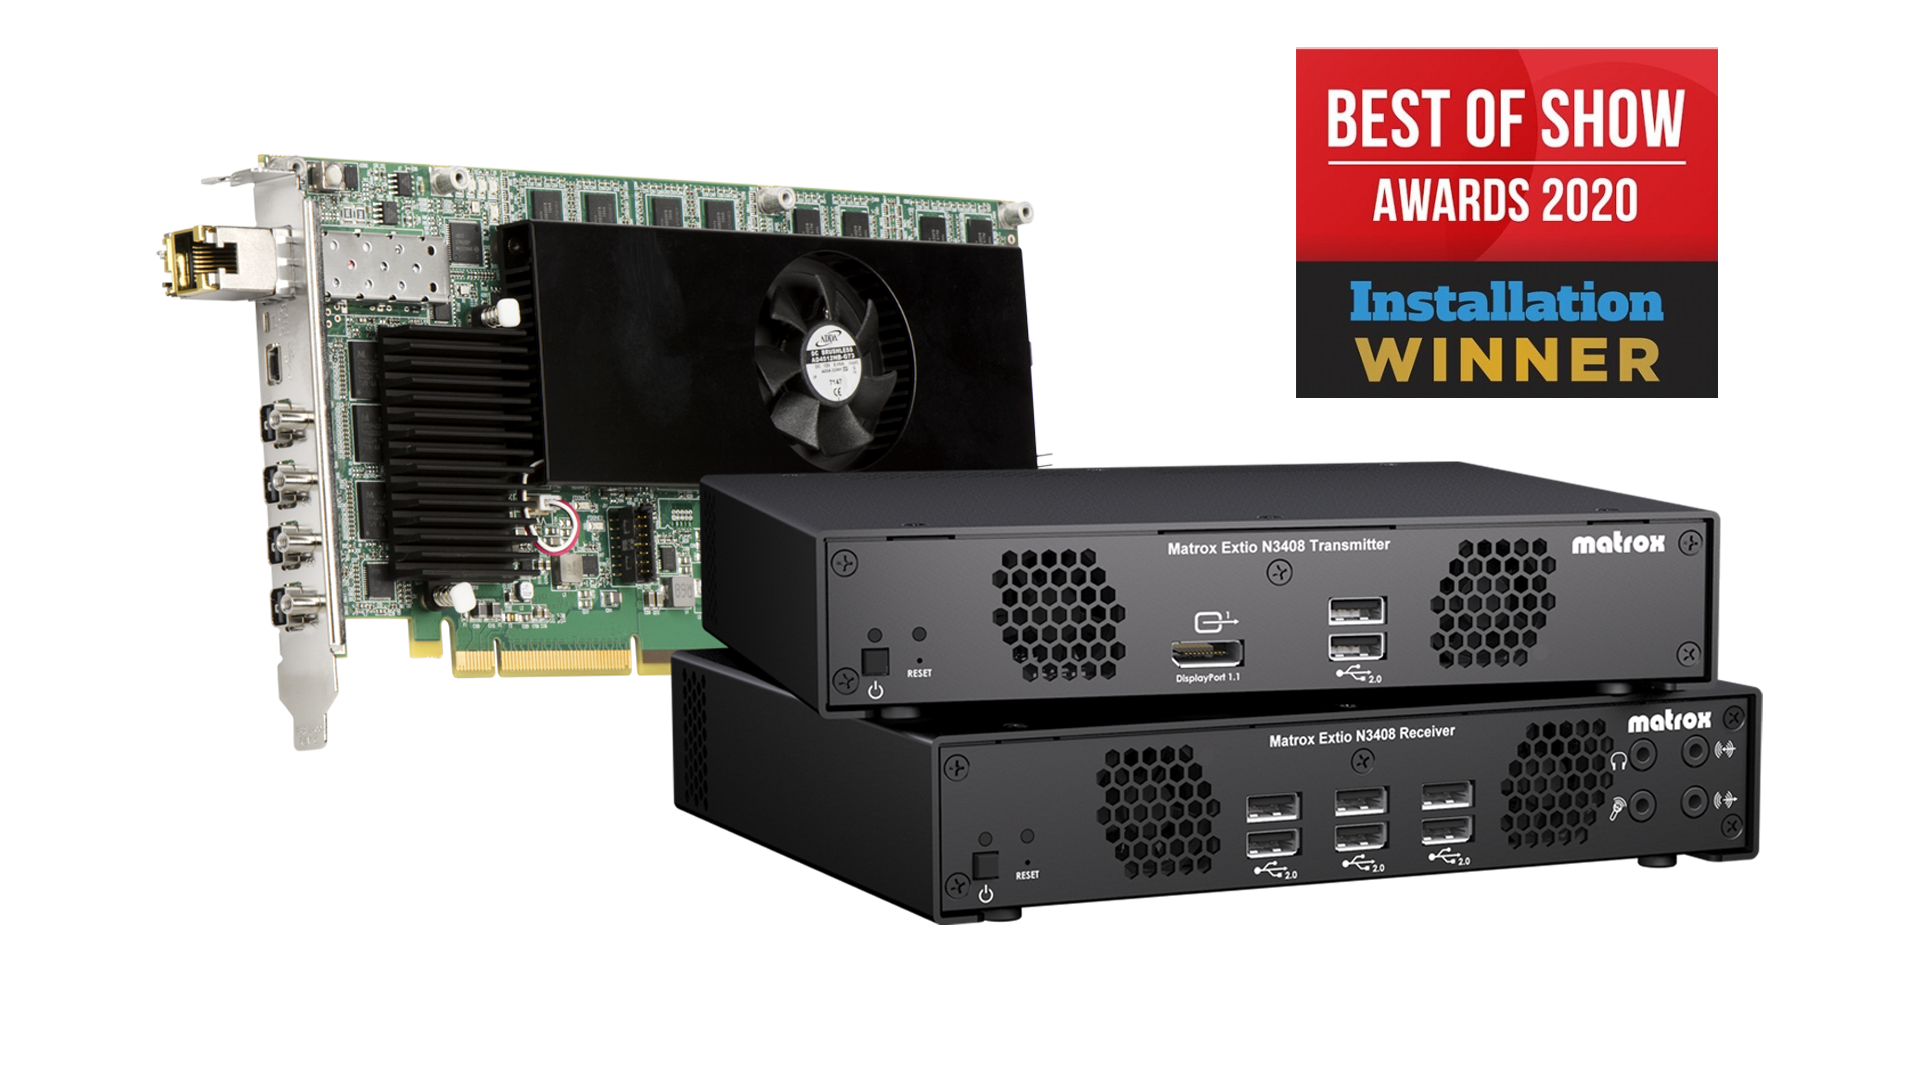 Matrox Extio 3 IP KVM extenders collect Best of Show Award at ISE 2020.